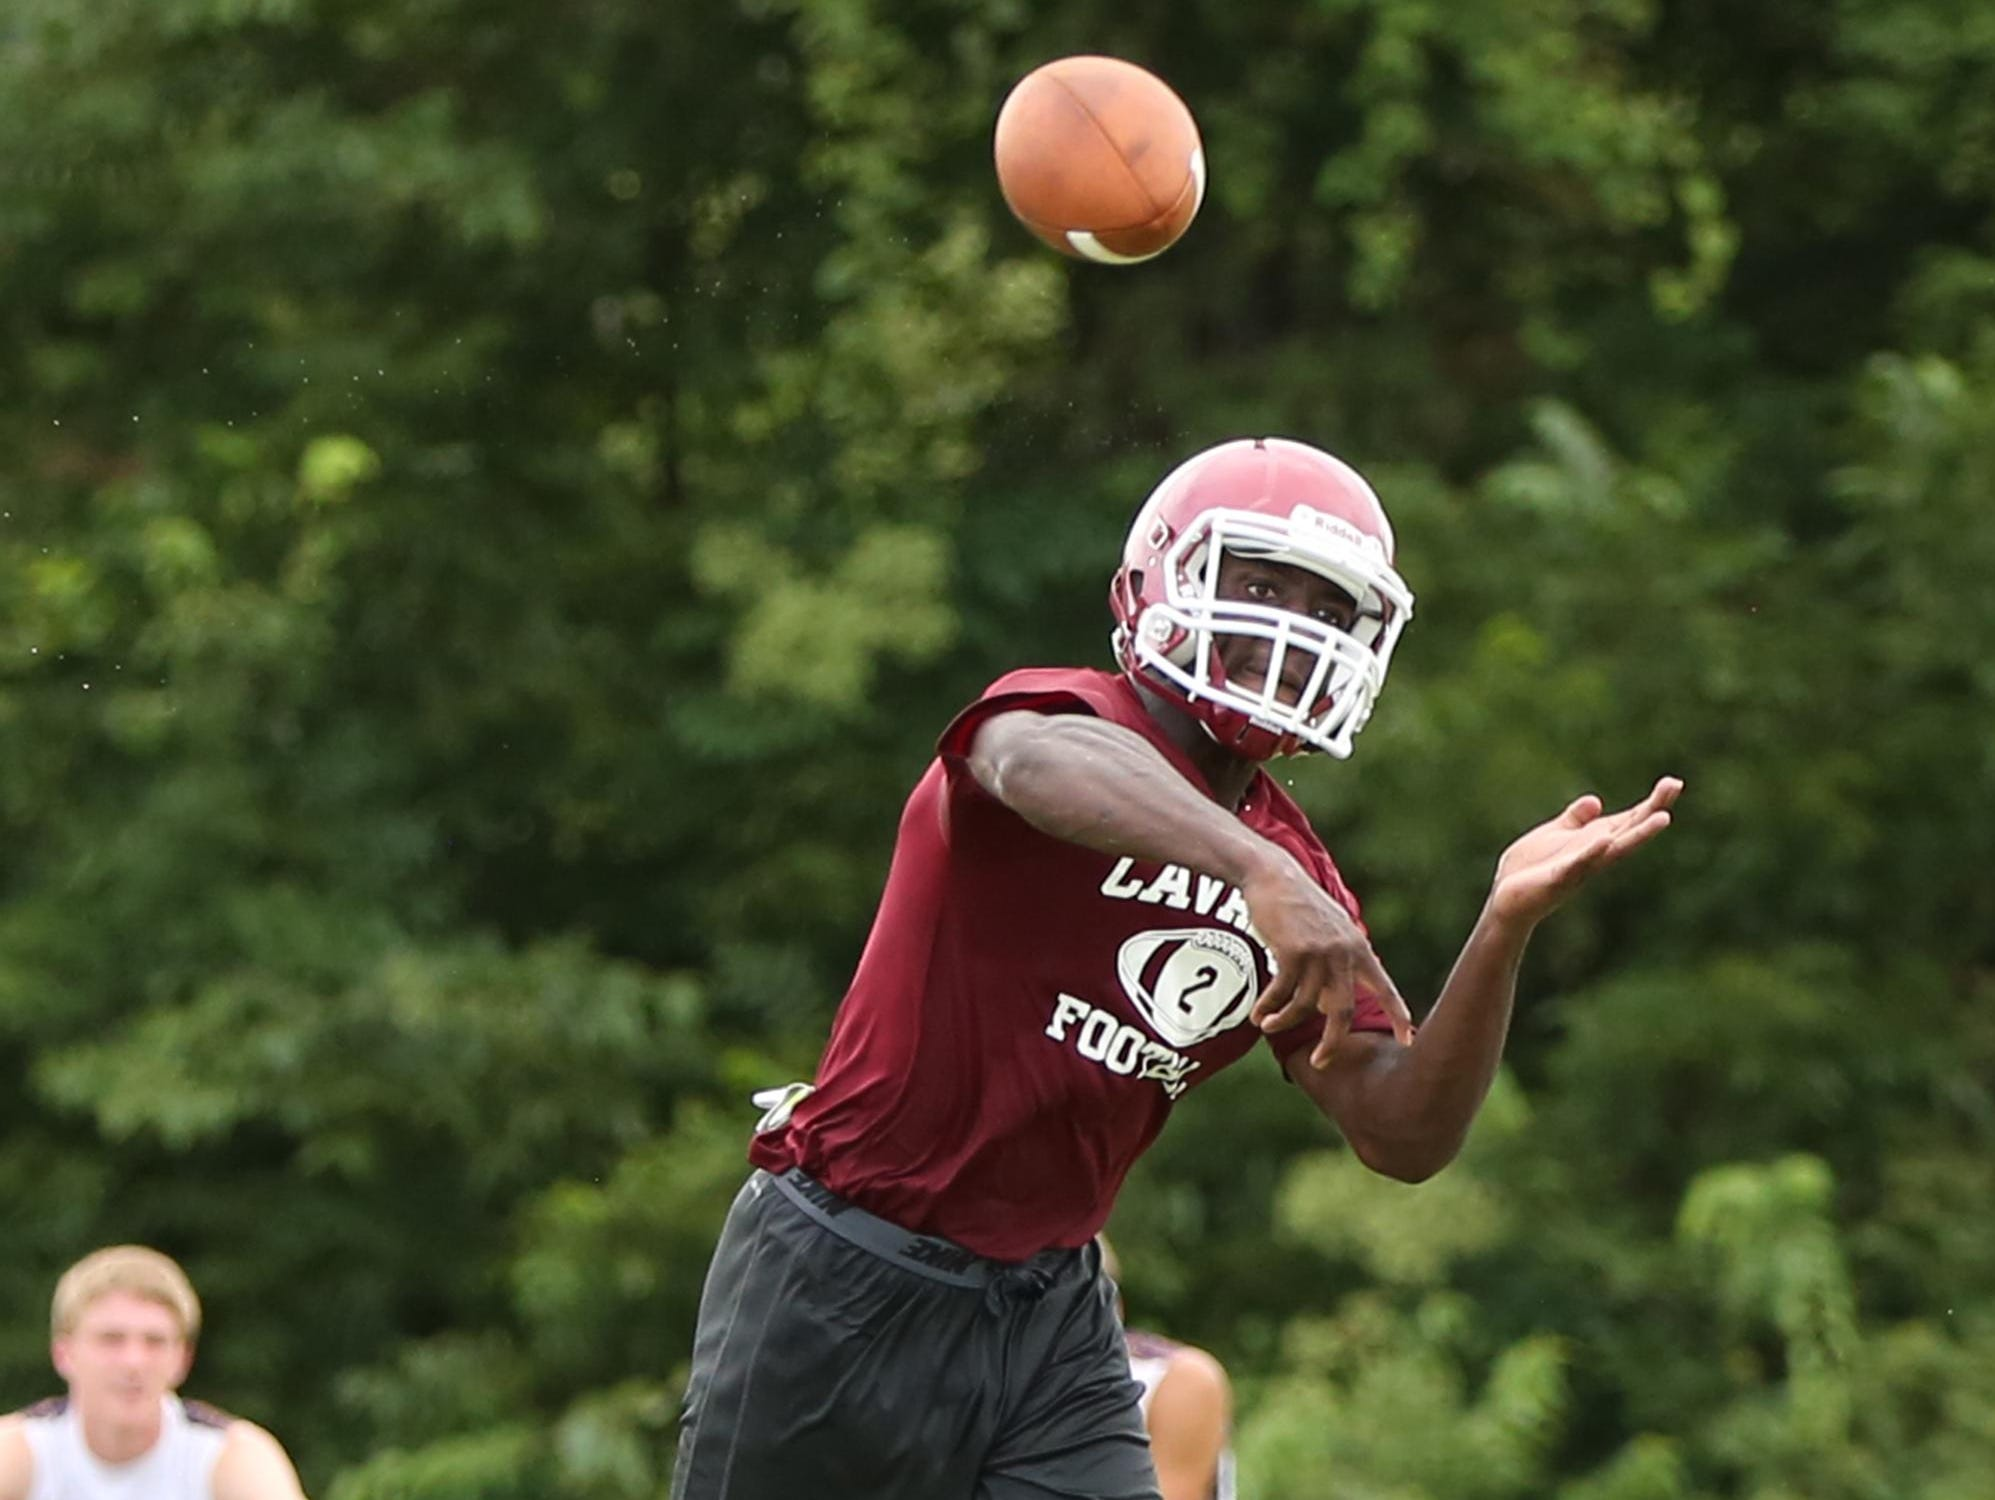 Jeremiah Nance will be the starting quarterback for Crockett County High's football team this year.